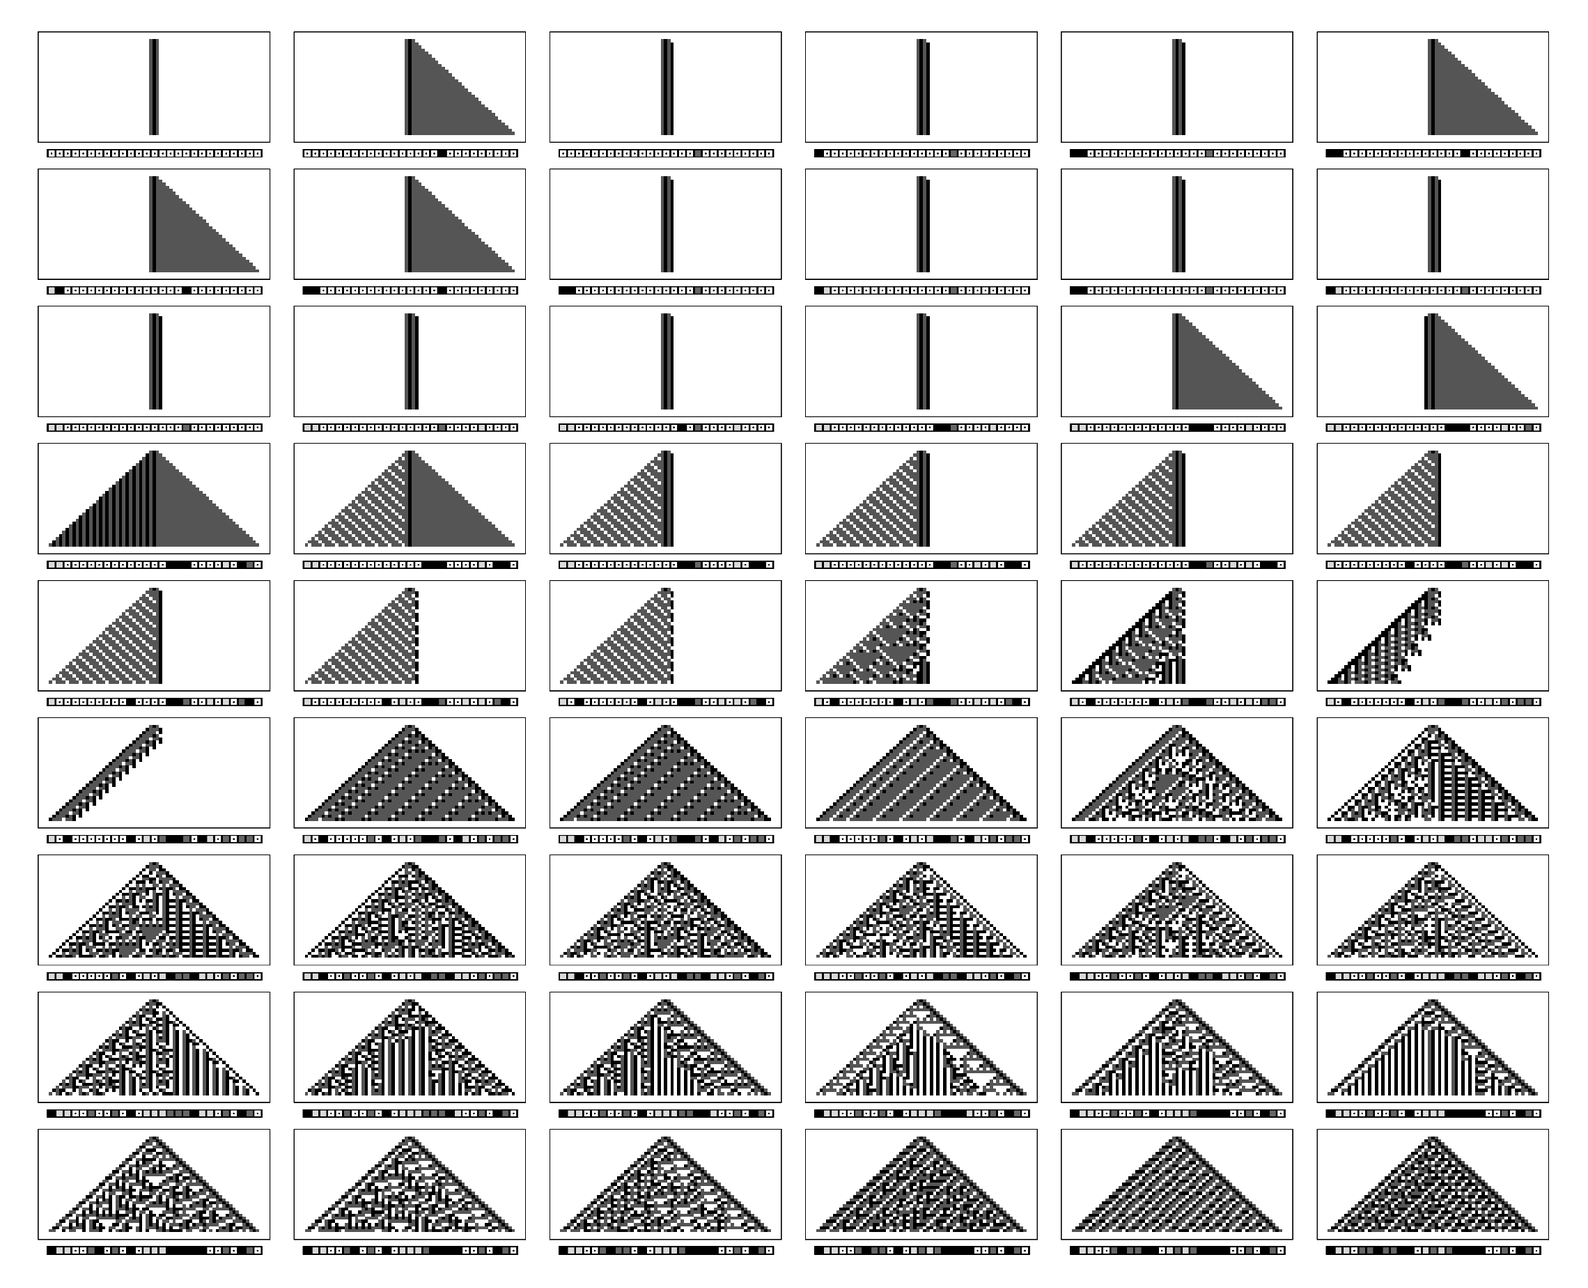 Behavior of a sequence of cellular automaton